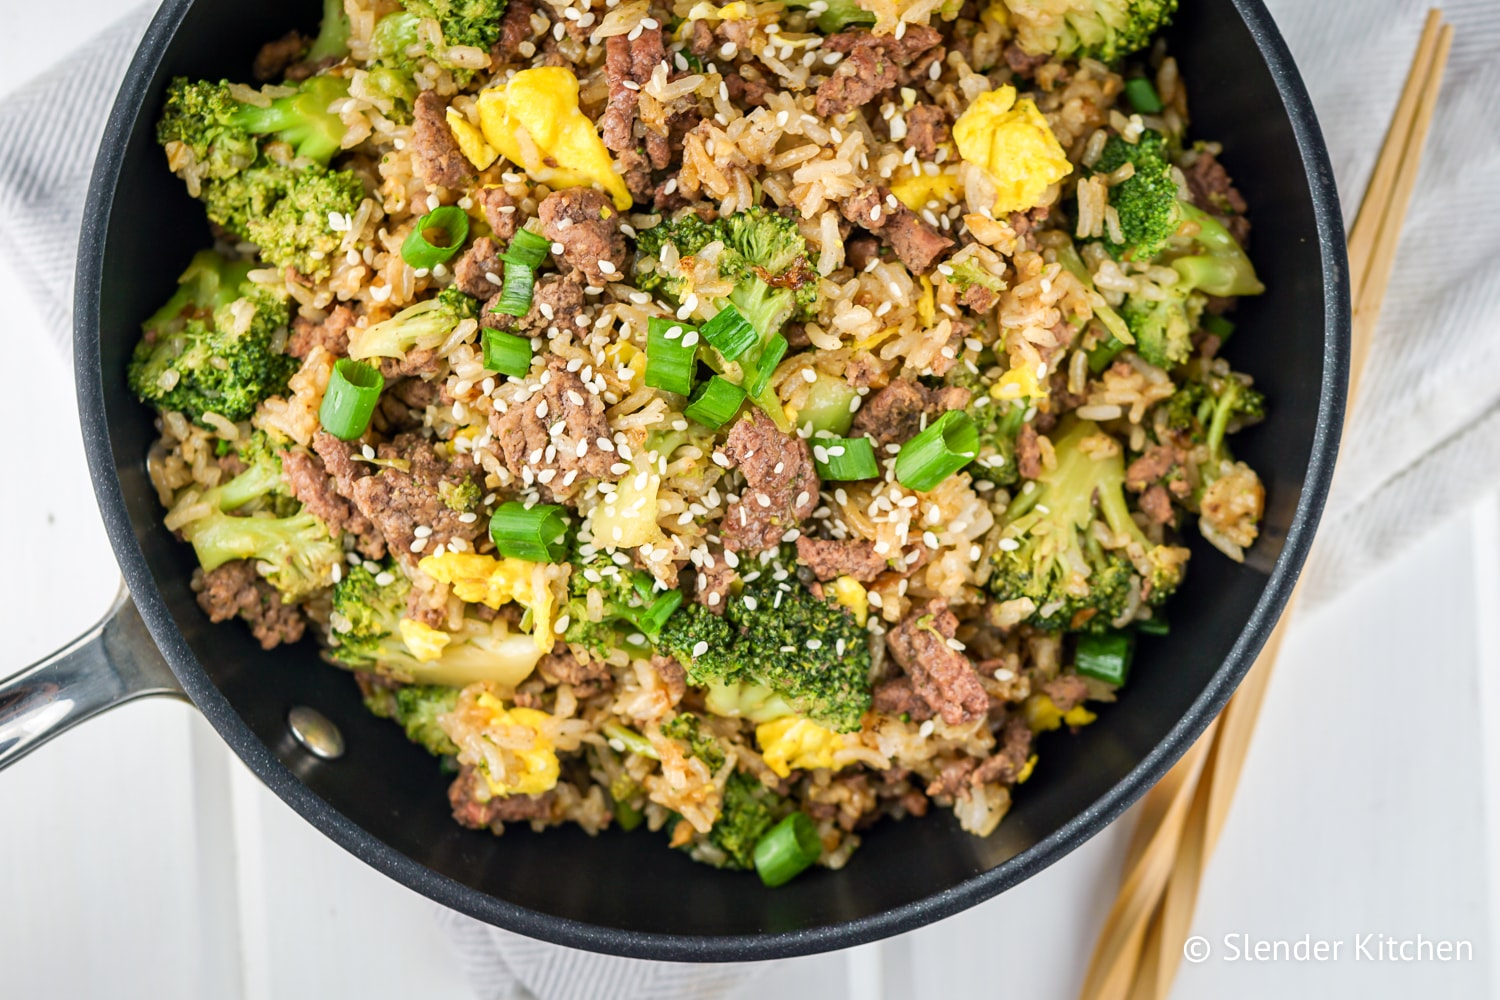 Beef and Broccoli Fried Rice in a pan with a wooden spoon.